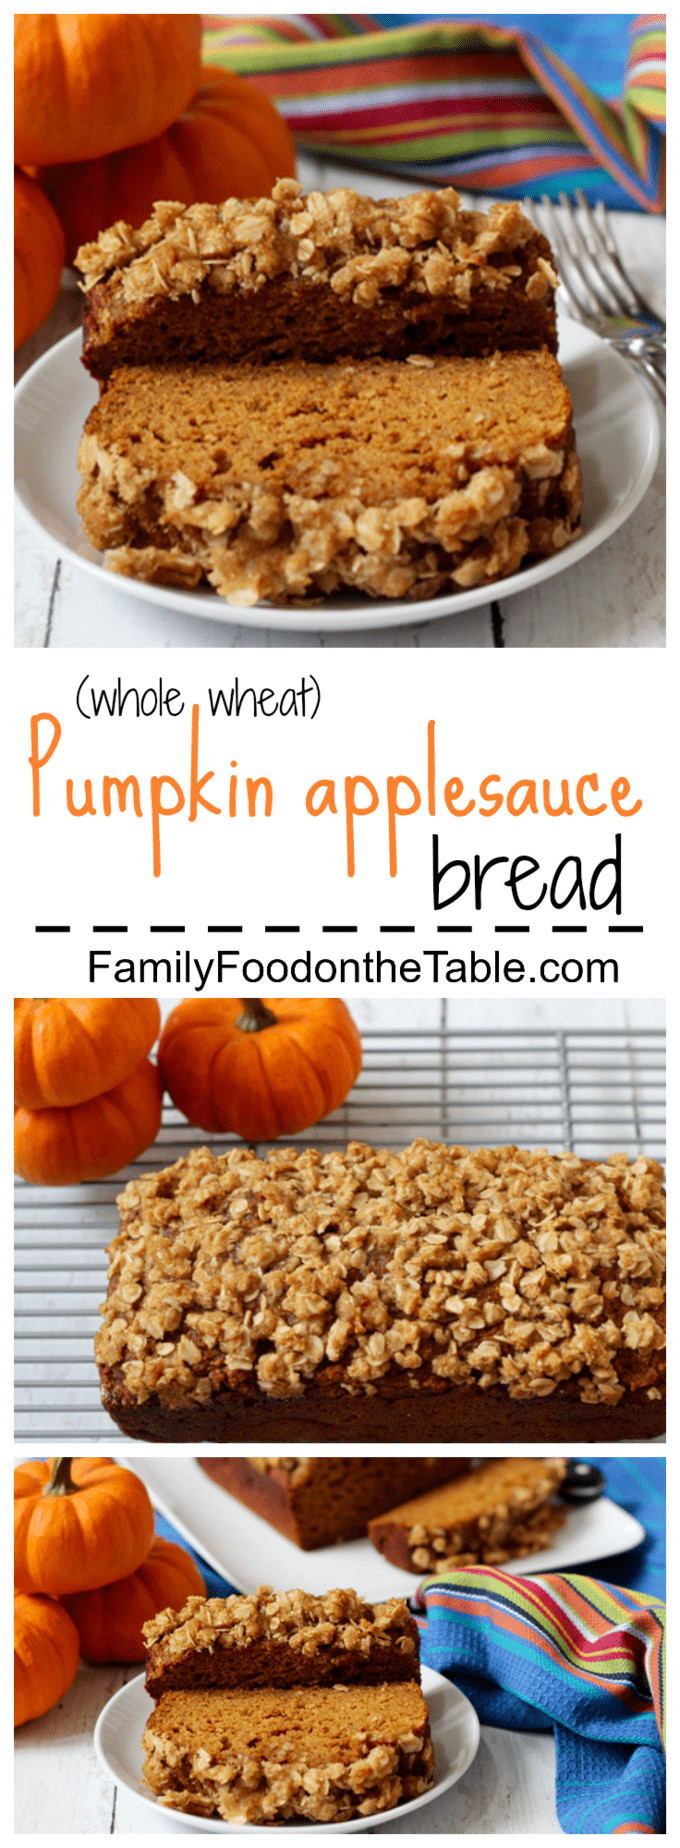 Healthy Pumpkin Bread With Applesauce  Whole wheat pumpkin applesauce bread Family Food on the